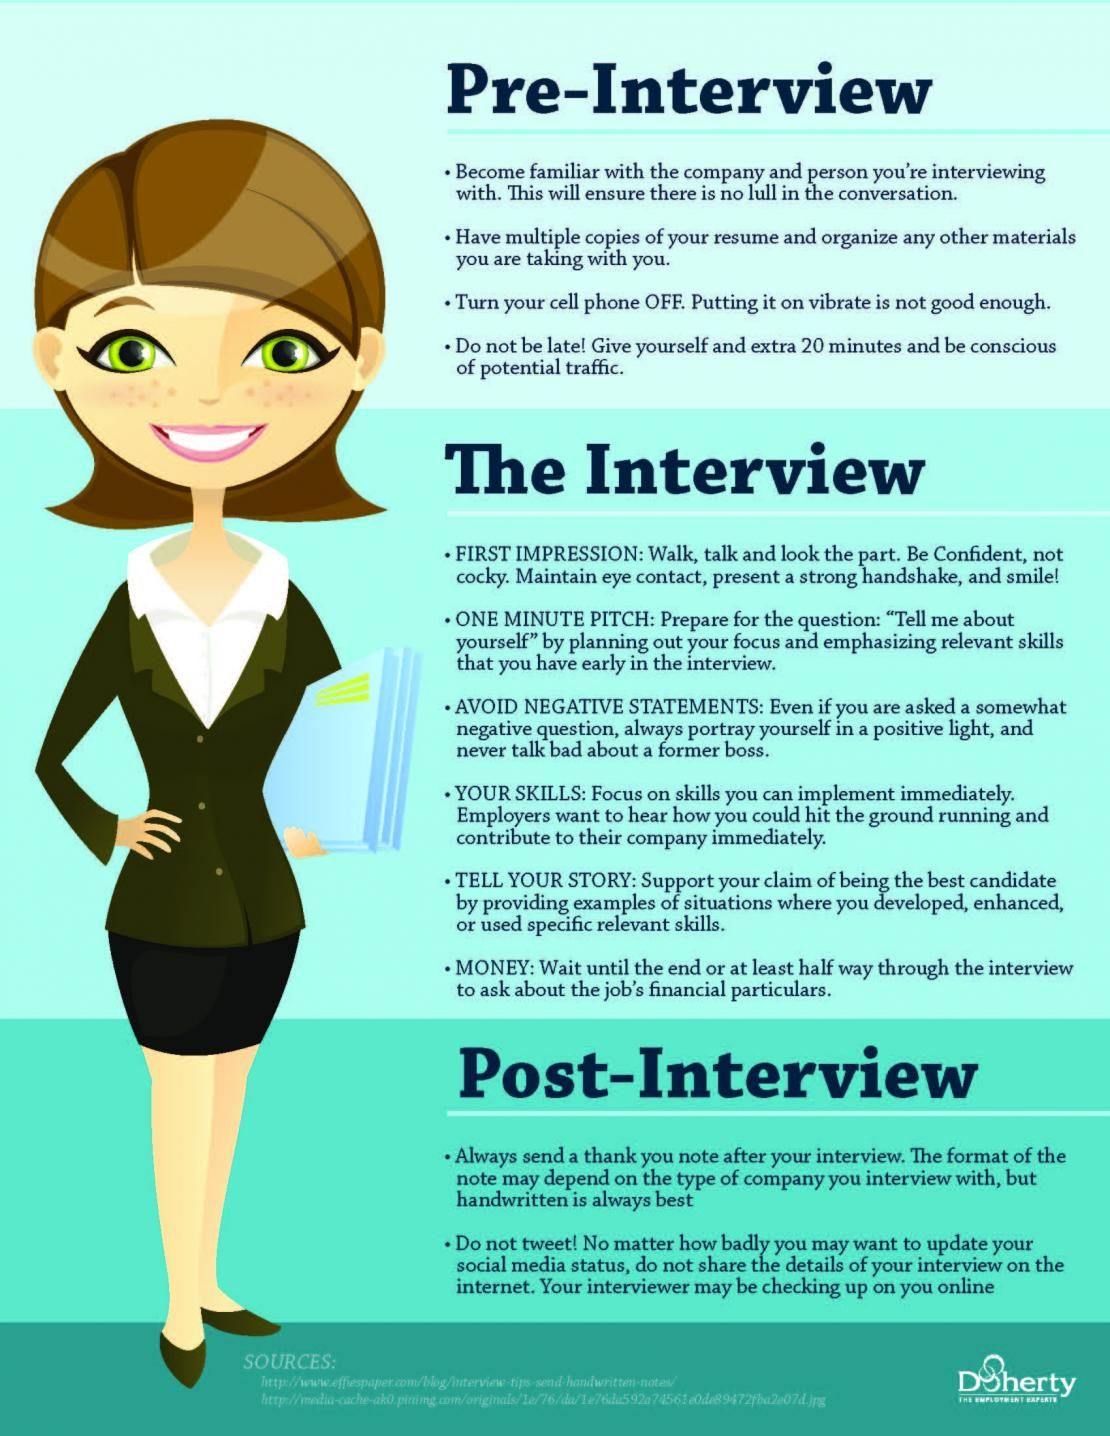 Interview Hairstyles The 3 Stages Of A Successful Job Interview  Doherty Employment